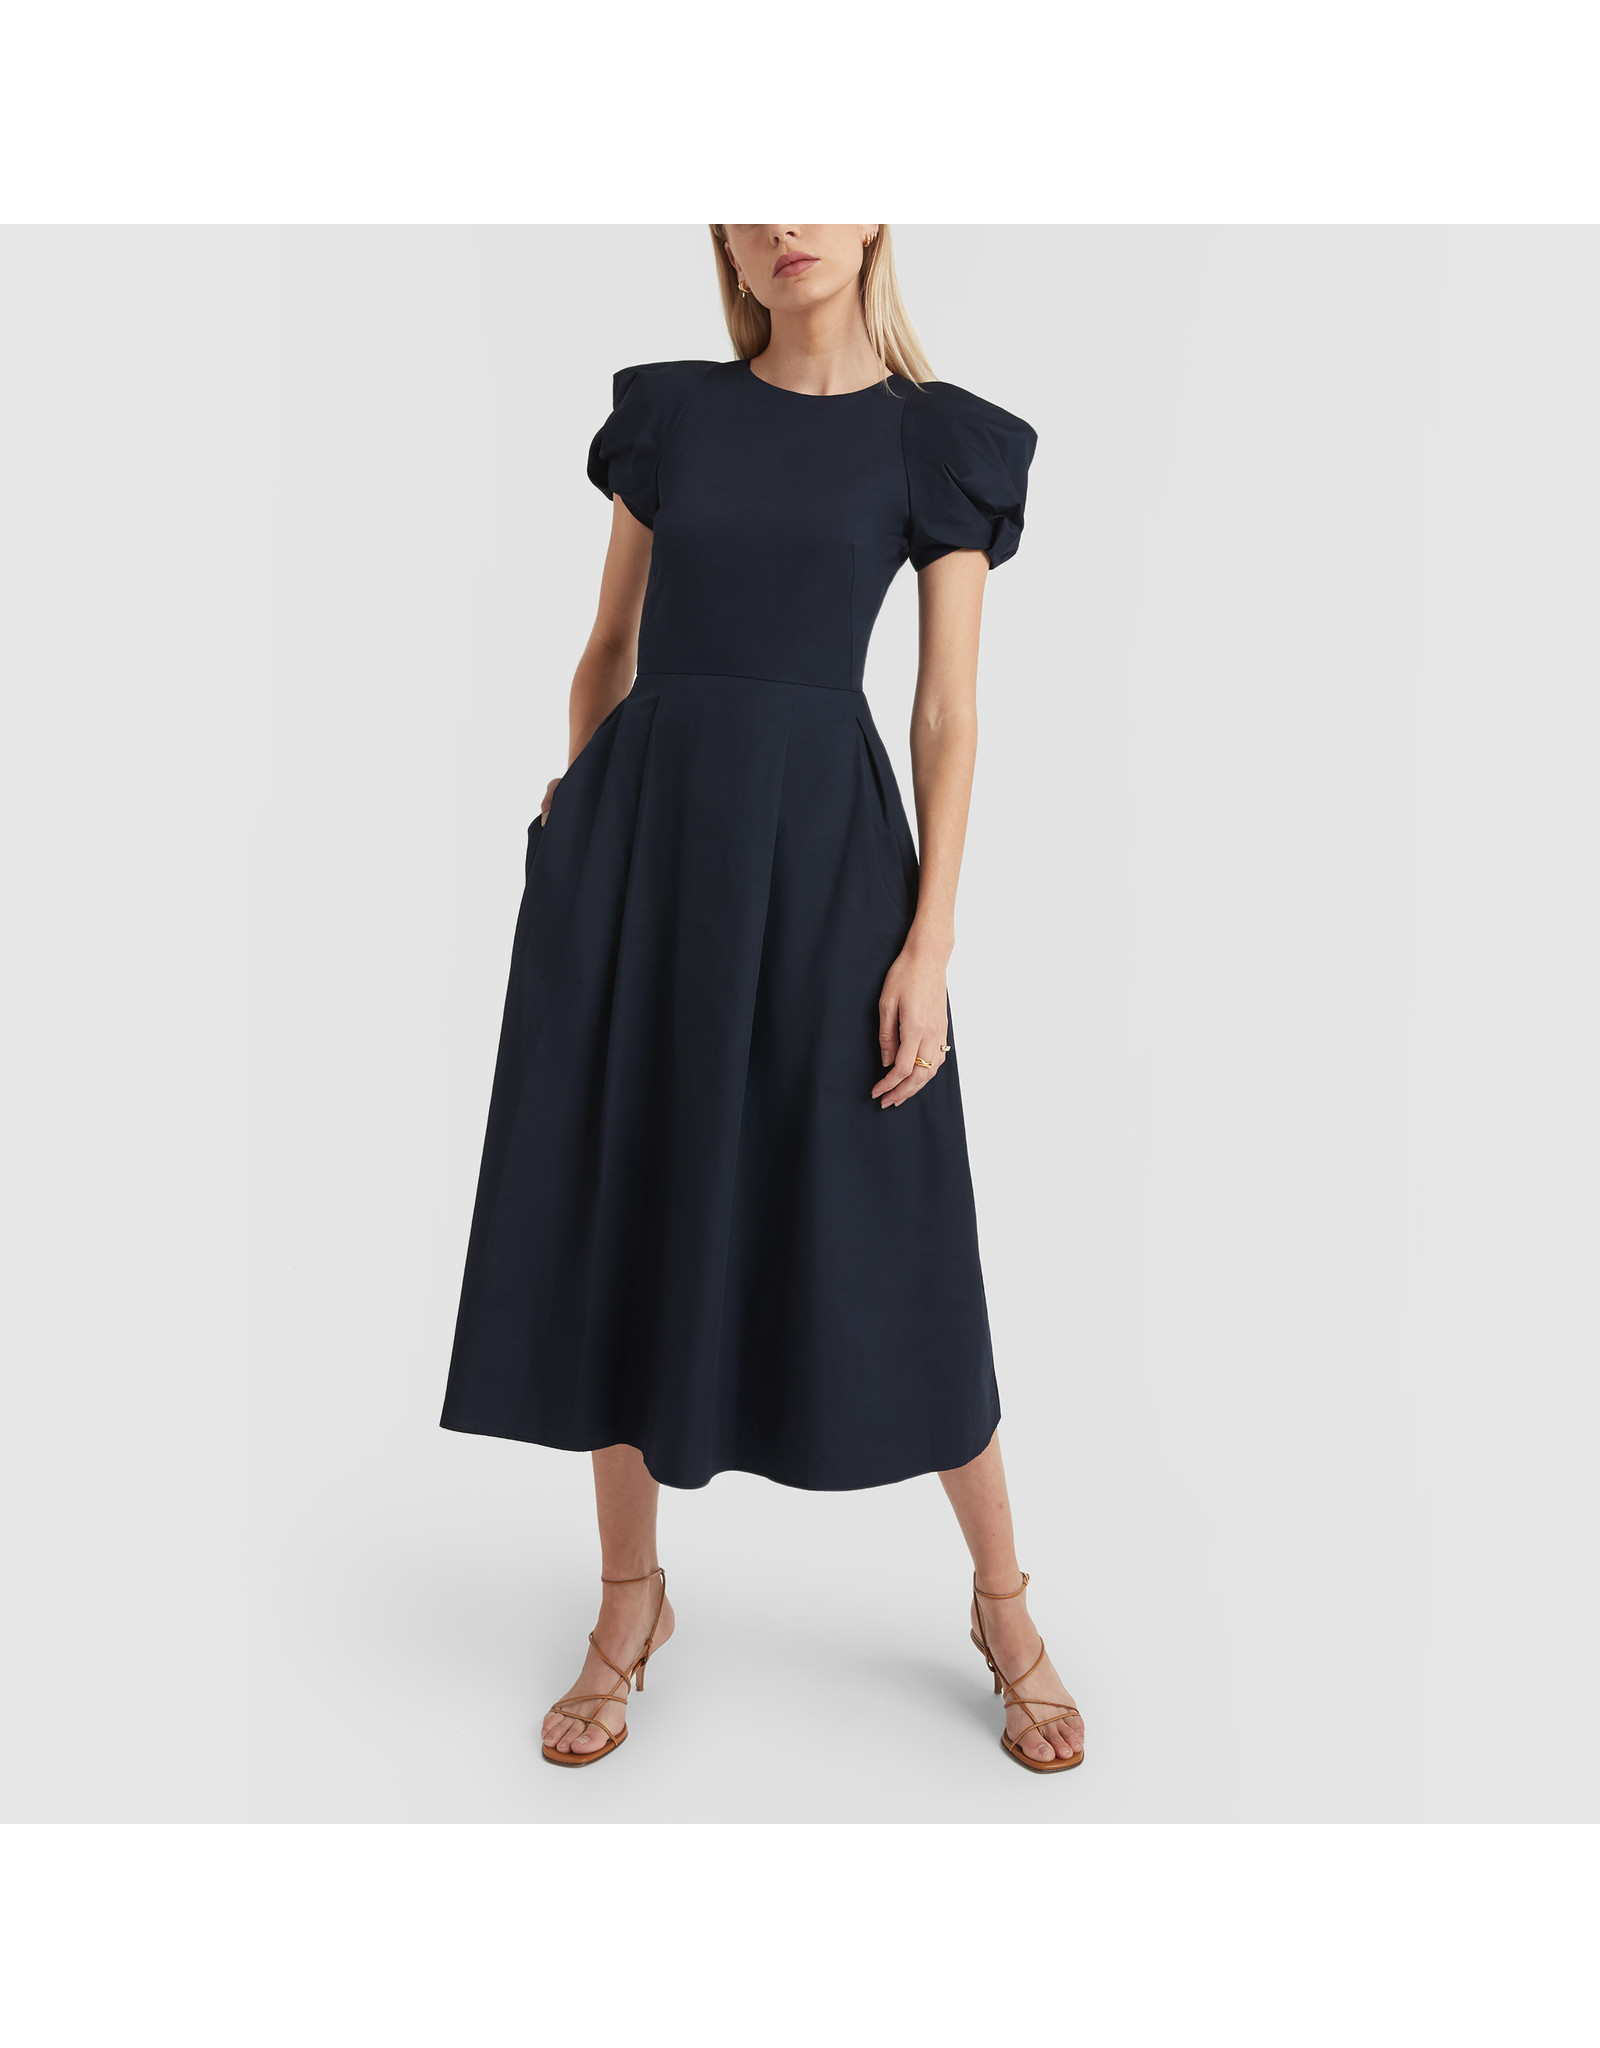 G. Label Elle Rounded Sleeve Mid Length Dress (Color: Navy, Size: 2)